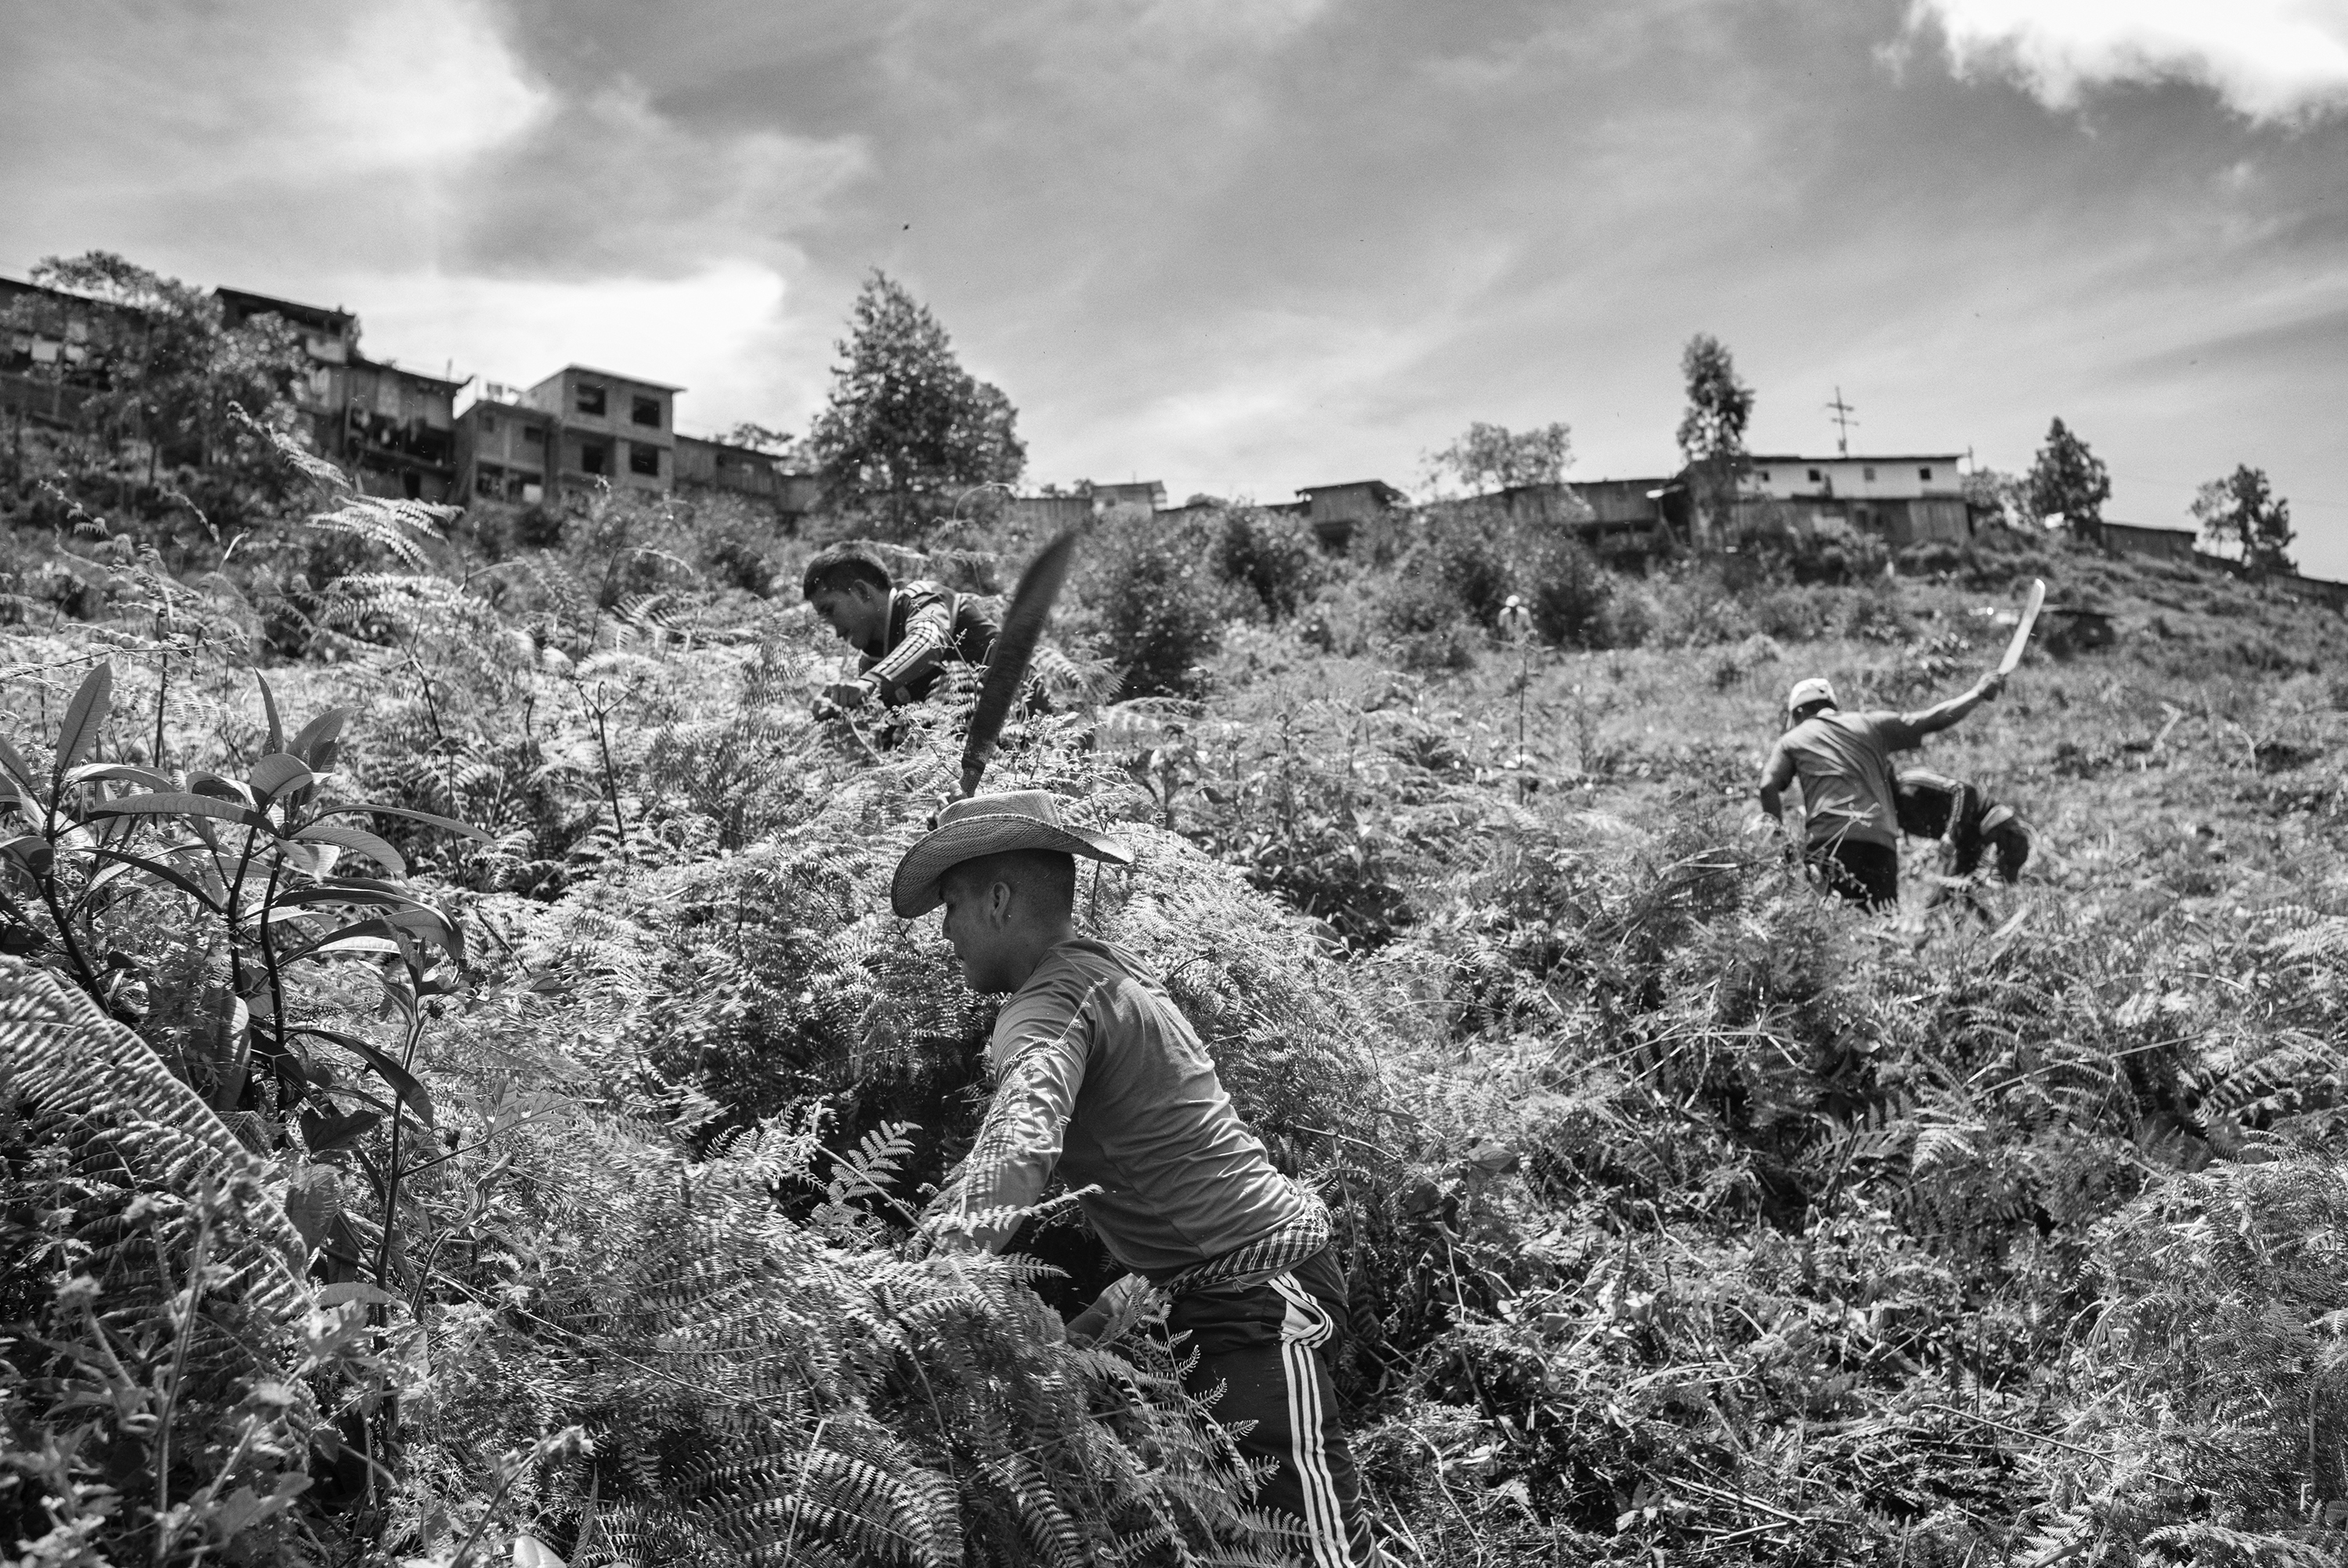 A group of FARC guerrillas and civilians perform community work in the community Robles Cauca, Colombia, July 2016. Many regions in  Colombia have lived for  52 years under the control of FARC as the only authority. The peace agreement reached Aug. 24, 2016,  has raised doubts and fears among civilians about the future that awaits their communities neglected by the state.